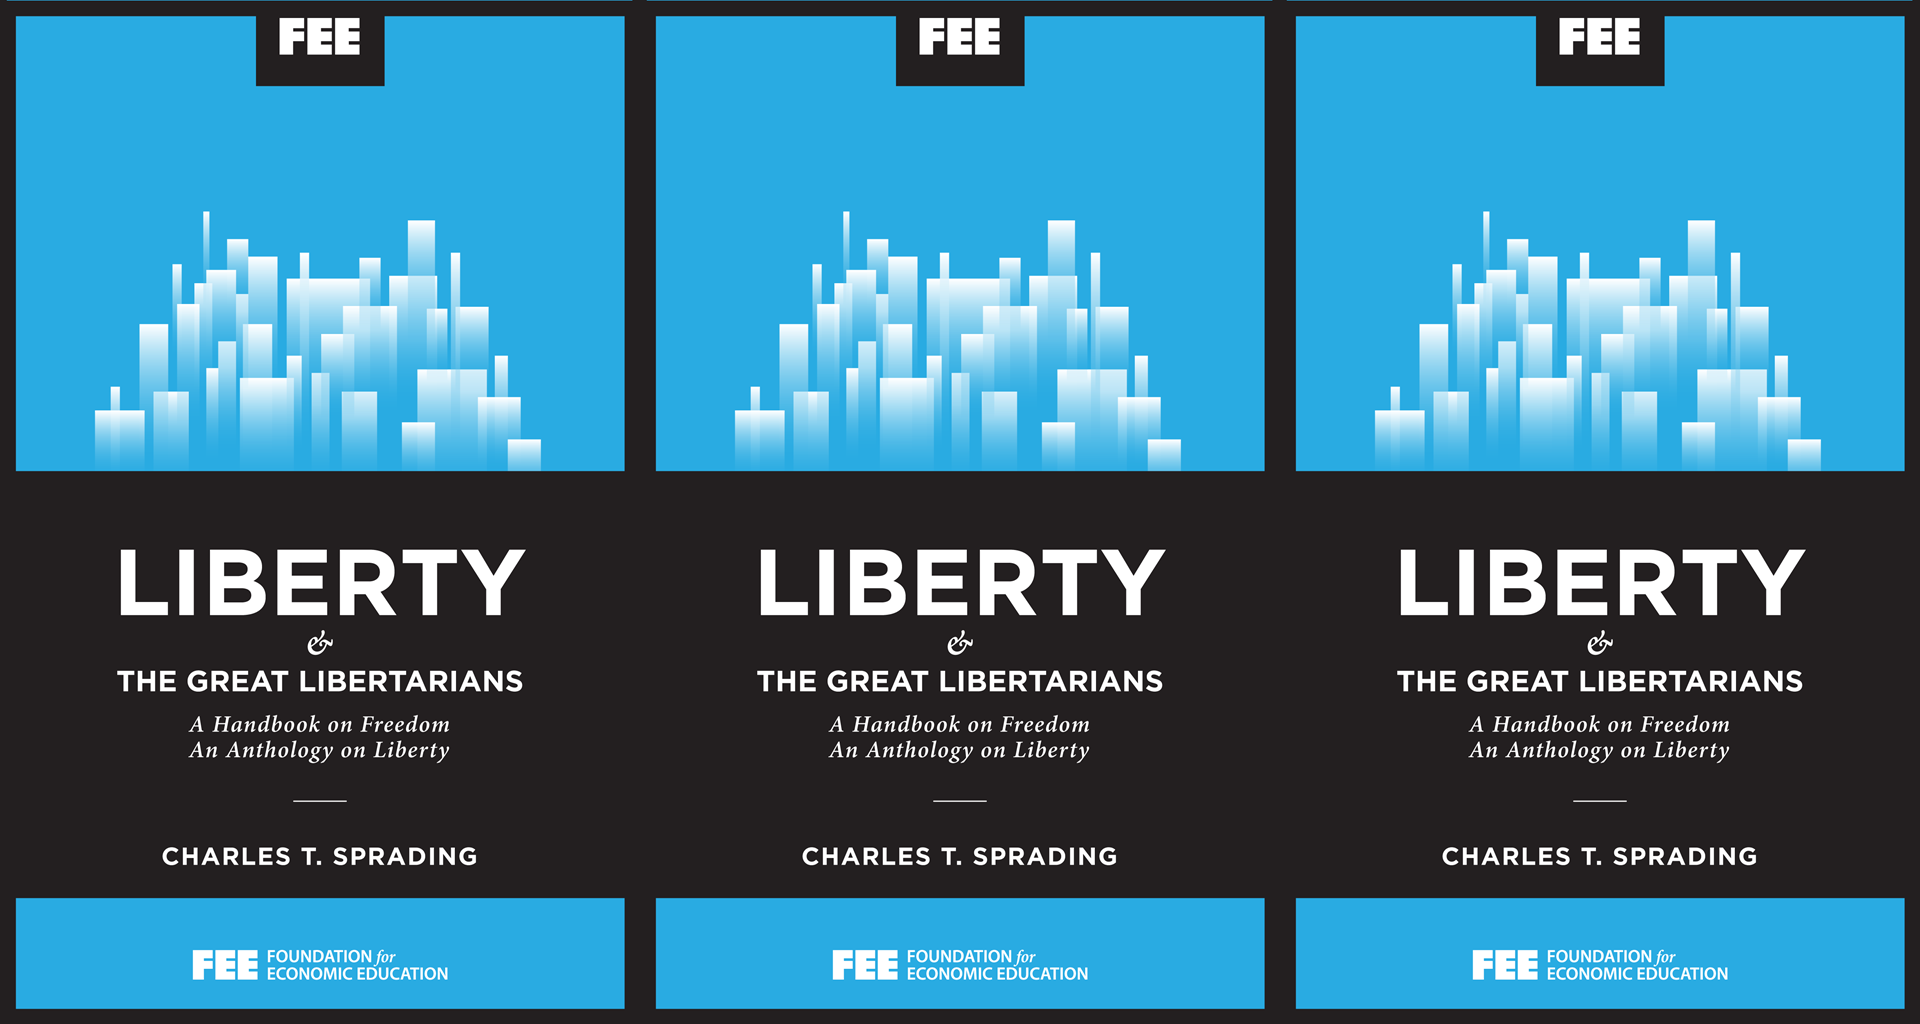 ccf8980afb8c Liberty and the Great Libertarians - Foundation for Economic Education